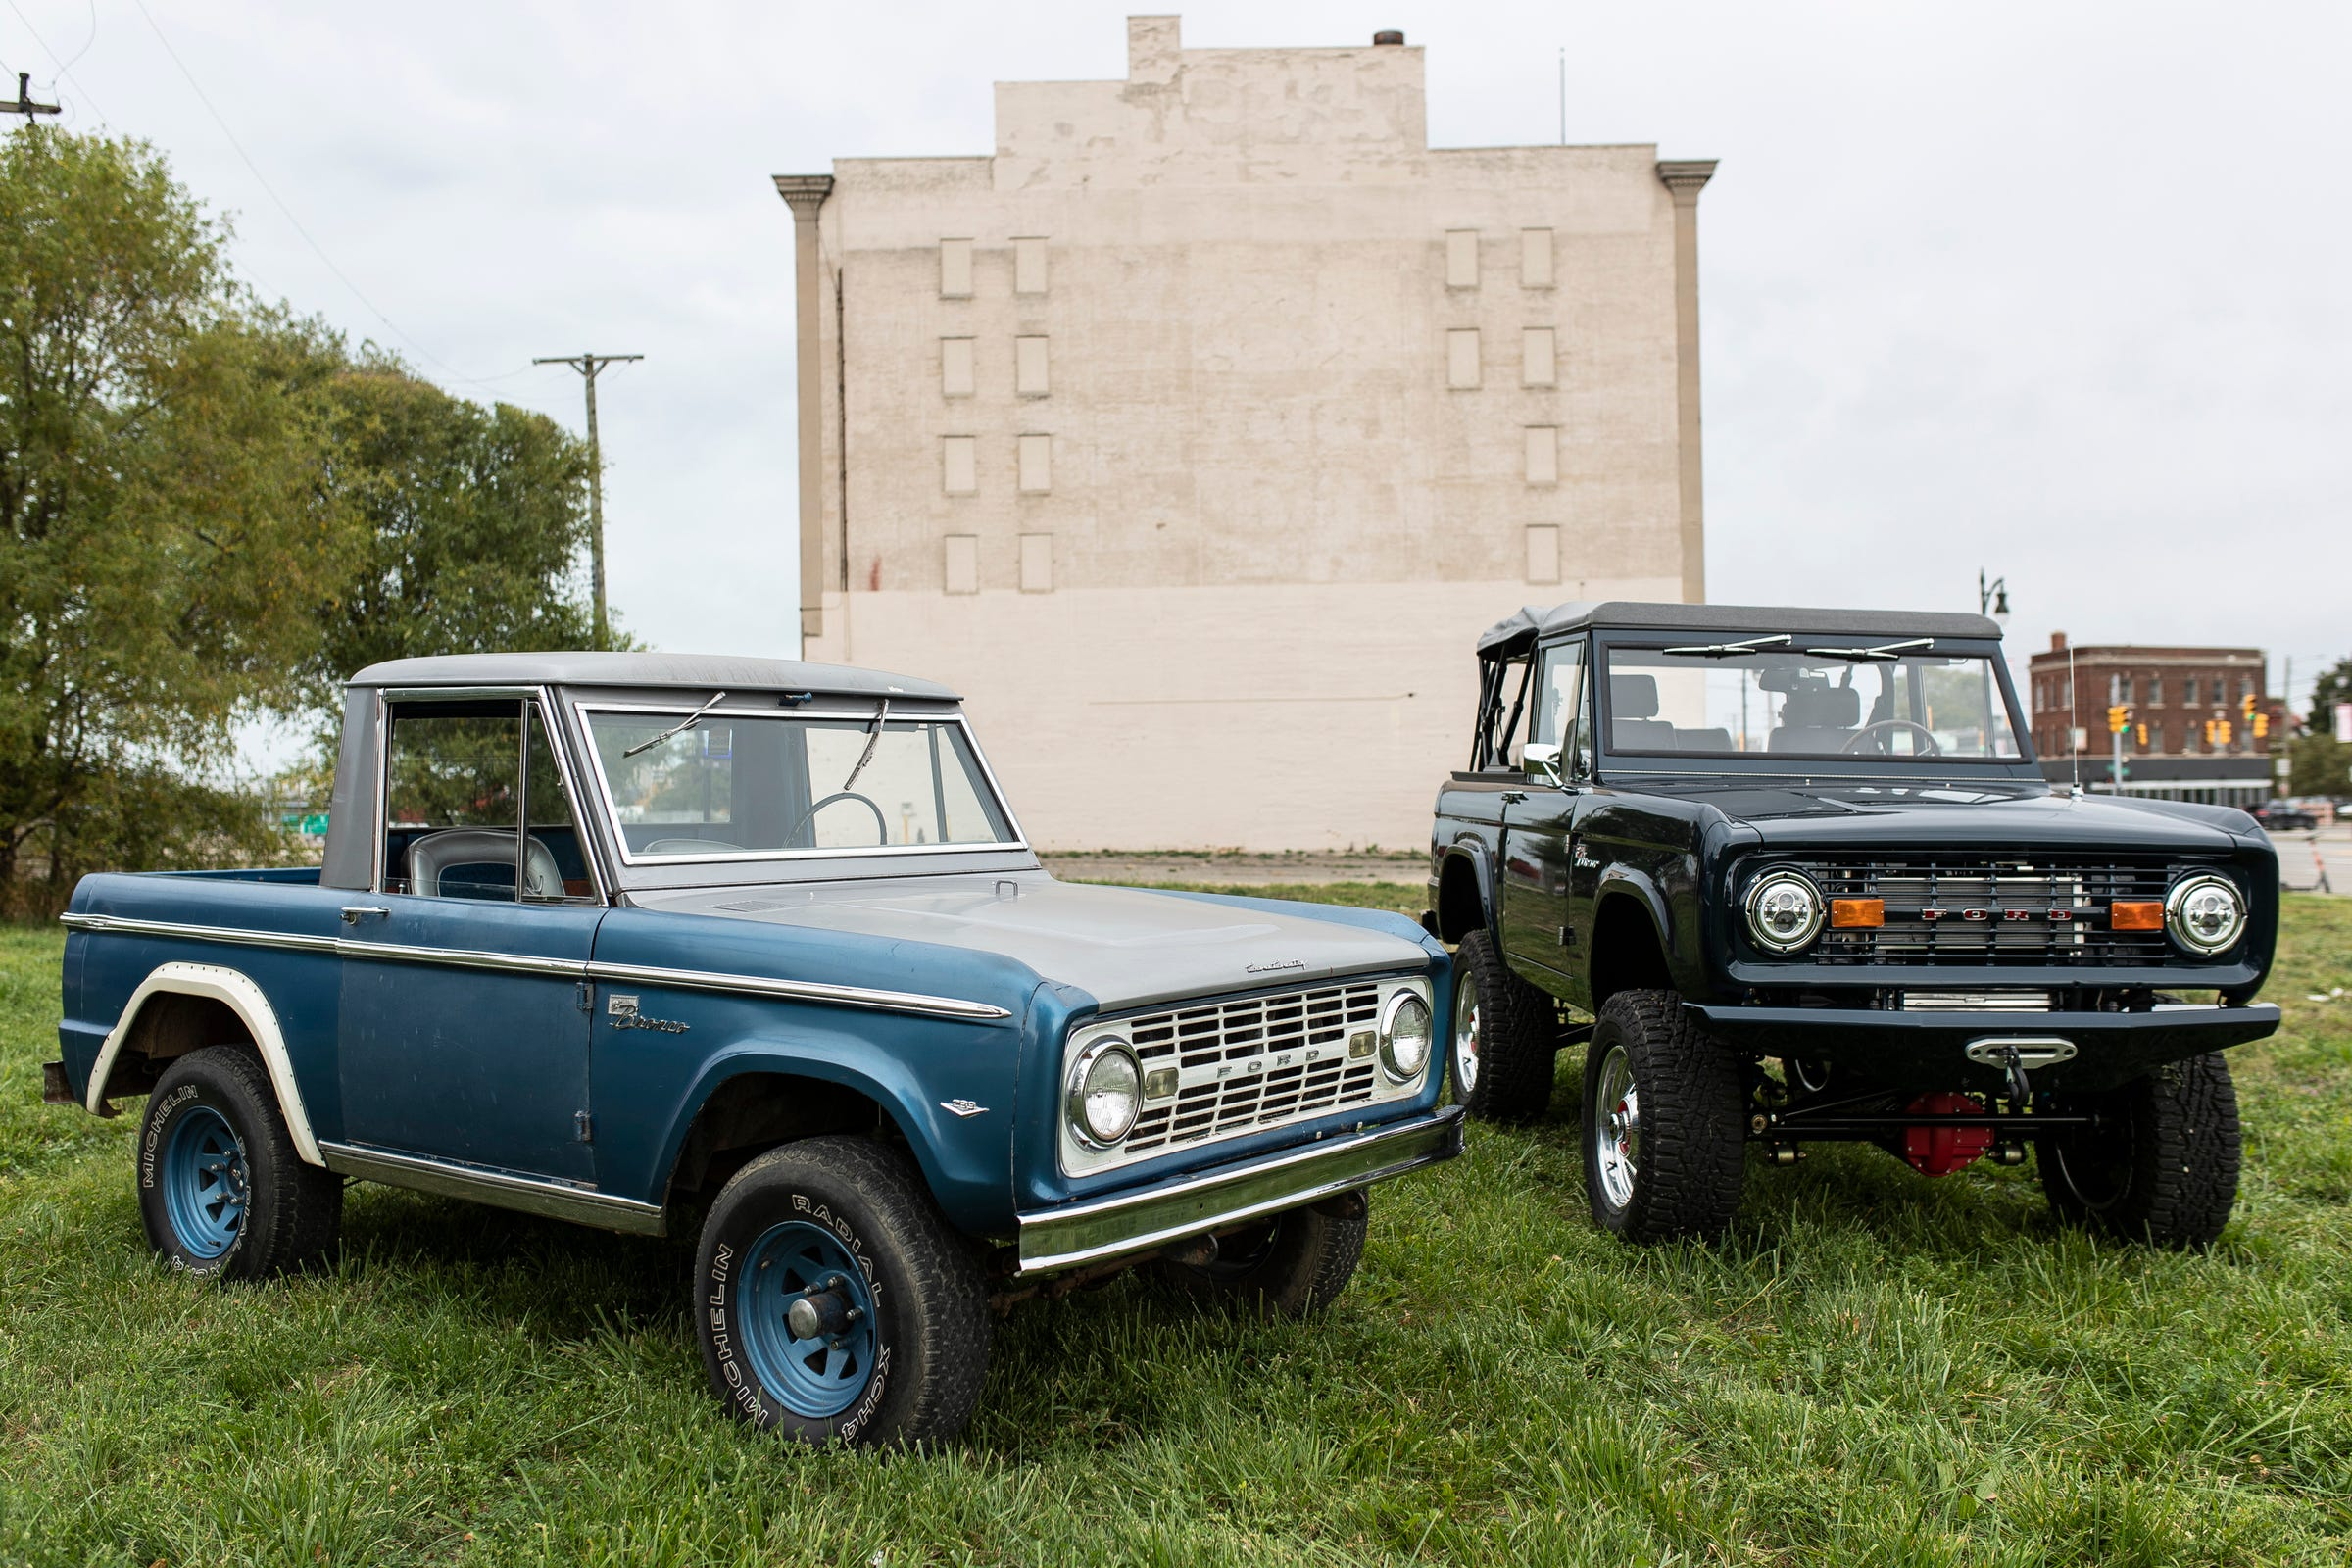 The 1966 Ford Bronco with a VIN number of 000, left, and Gateway Bronco's re-imagined edition that costs about $320,000. This original 1966 Bronco is the first Bronco ever to roll off the Ford production line. It was given to race car driver Carroll Shelby by Ford Motor Co. These images were taken in Detroit on Wednesday.